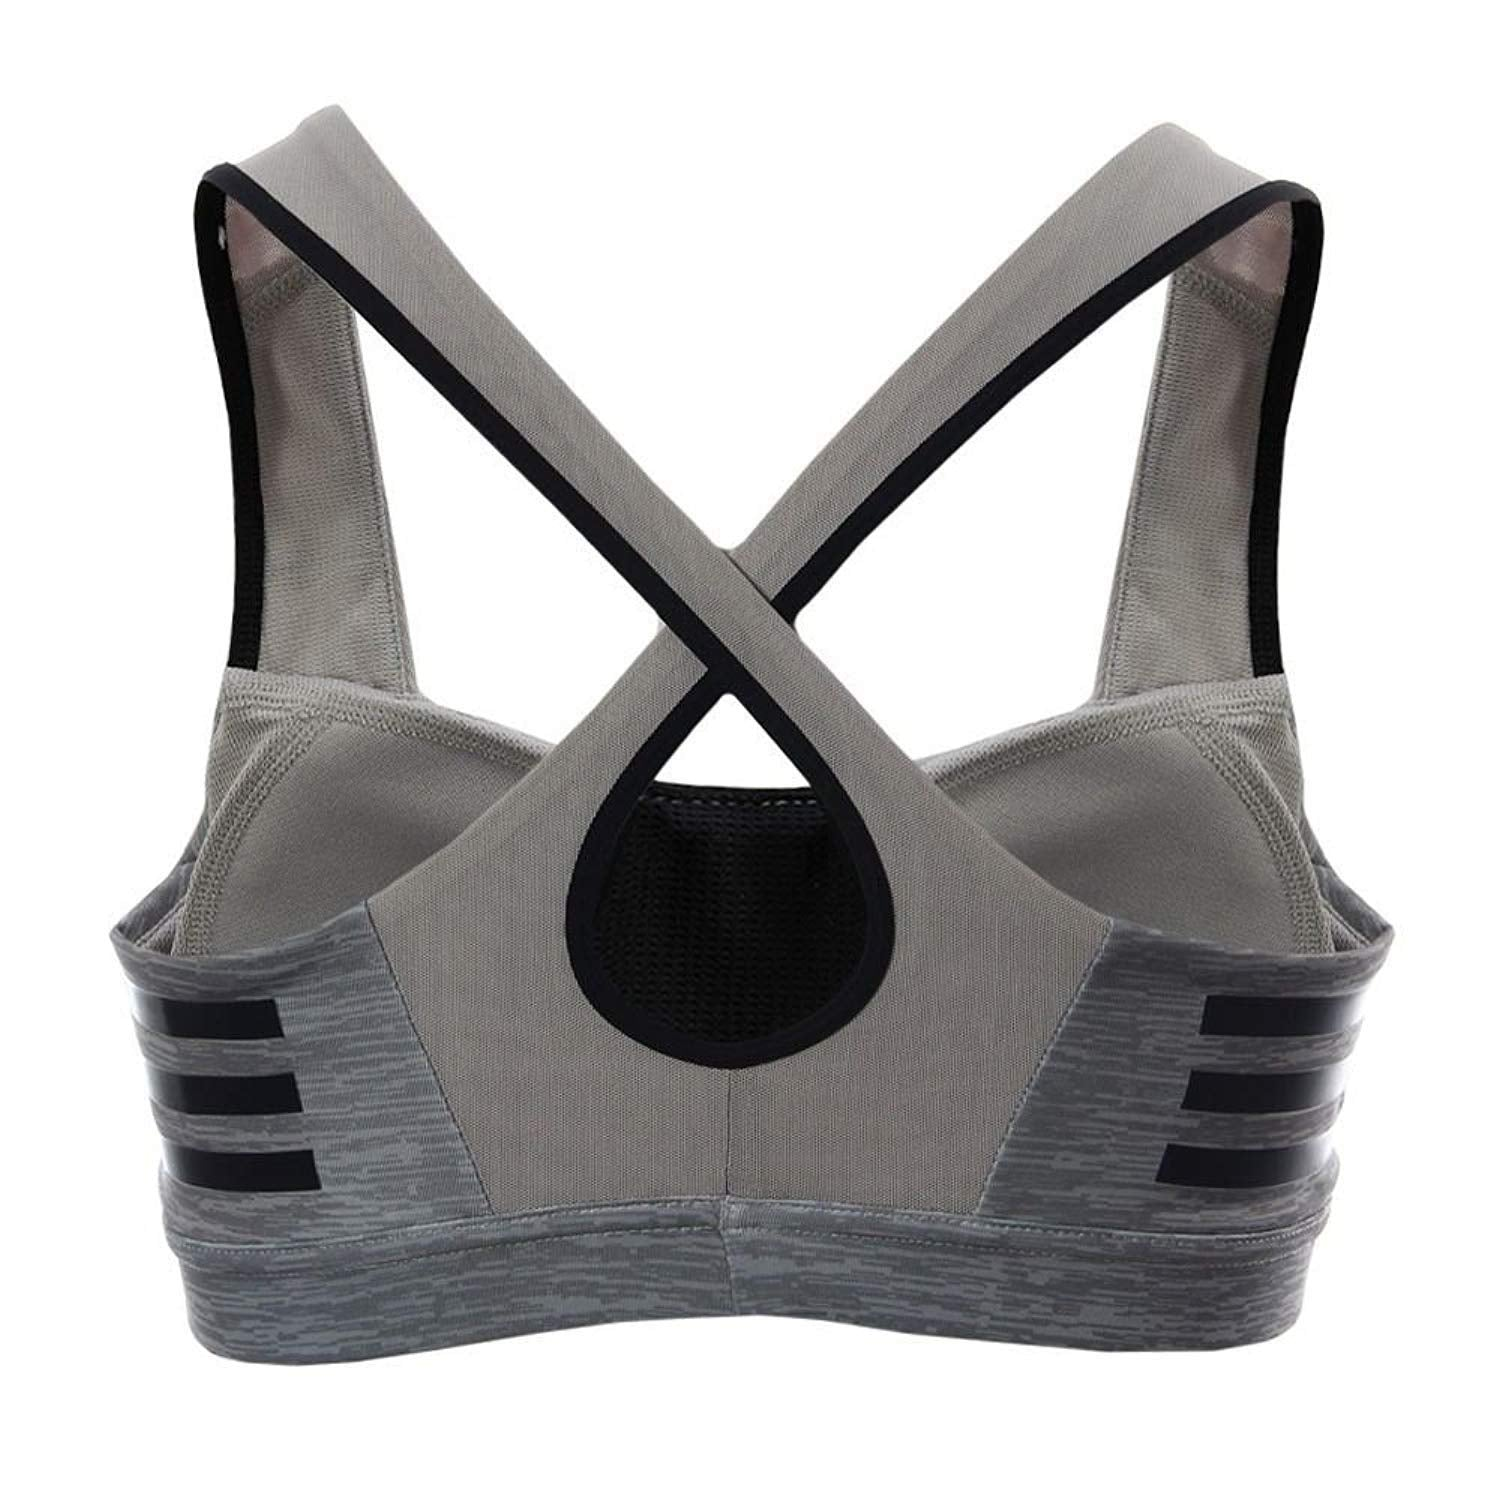 Adidas Infinite Series Supernova Ladies Sports Bra Grey Large